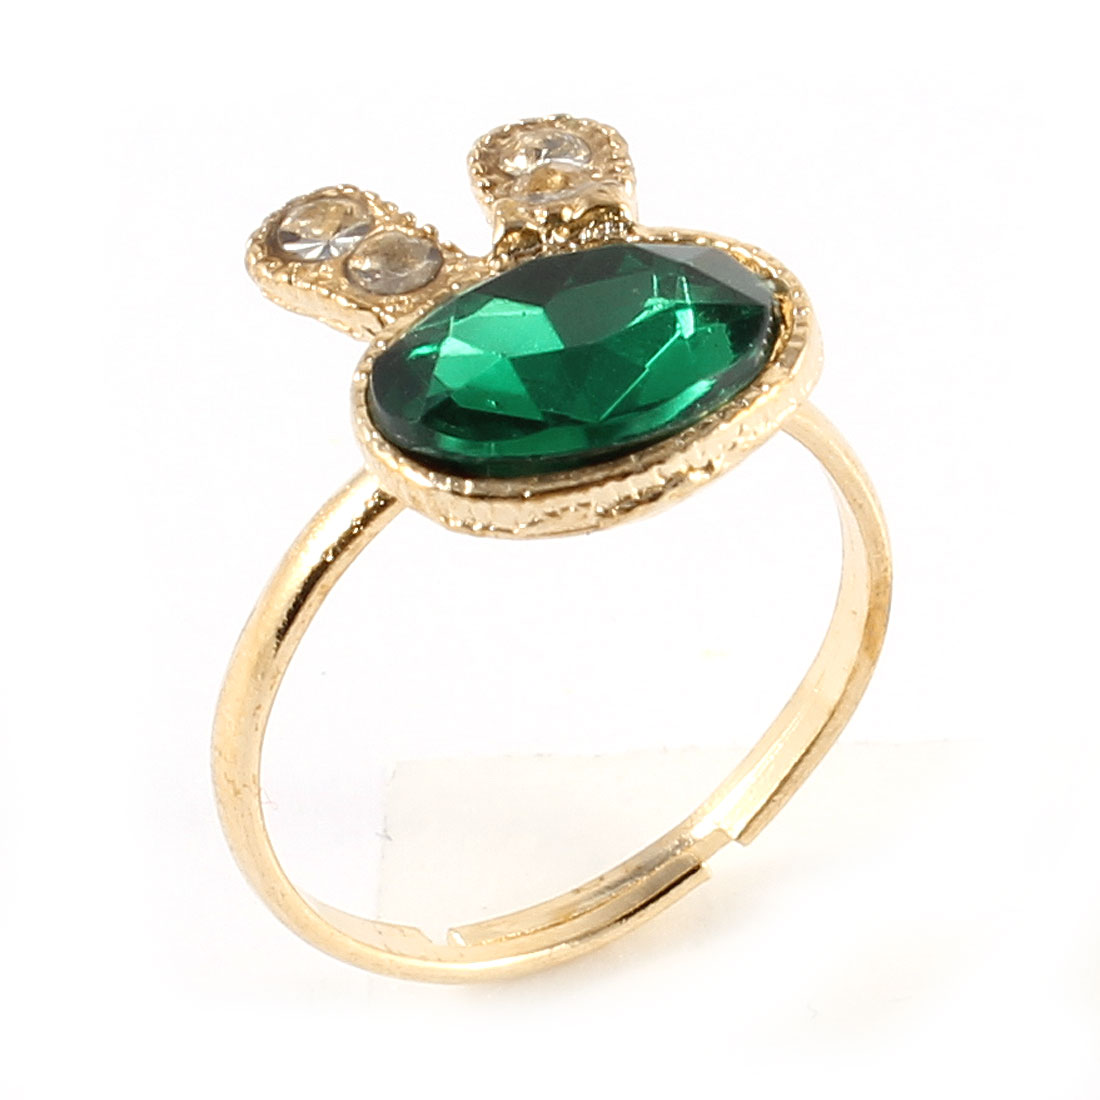 Ladies Green Crystal Inlaid Rabbit Head Shape Decor Gold Tone Metal Finger Ring